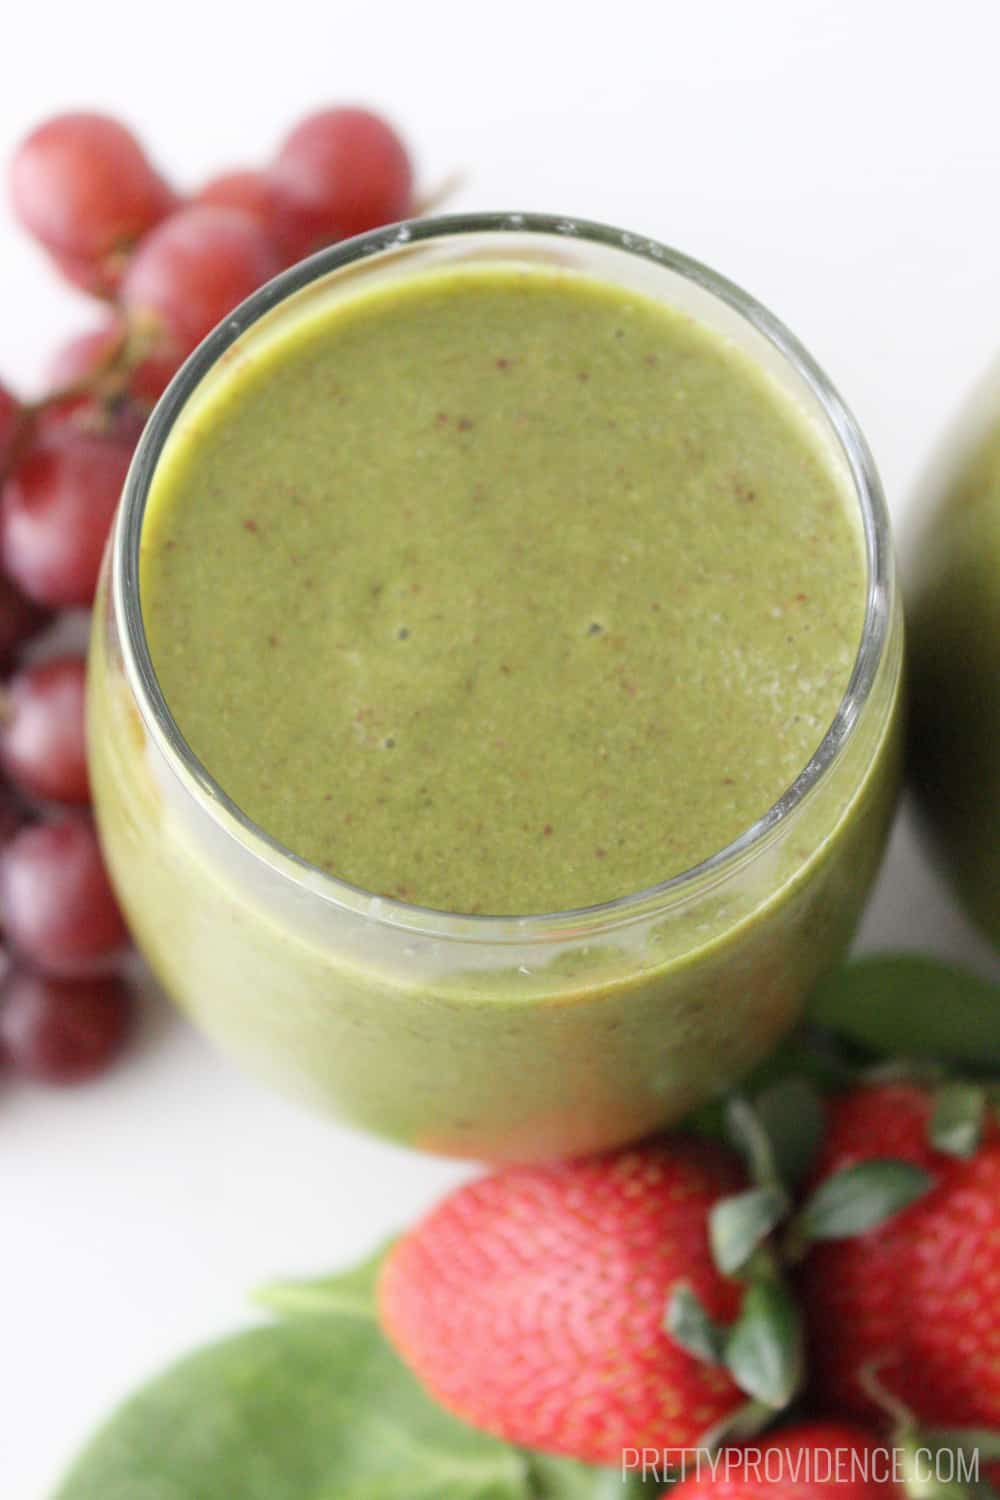 Green smoothie in a clear glass, with red grapes and strawberries on the side.